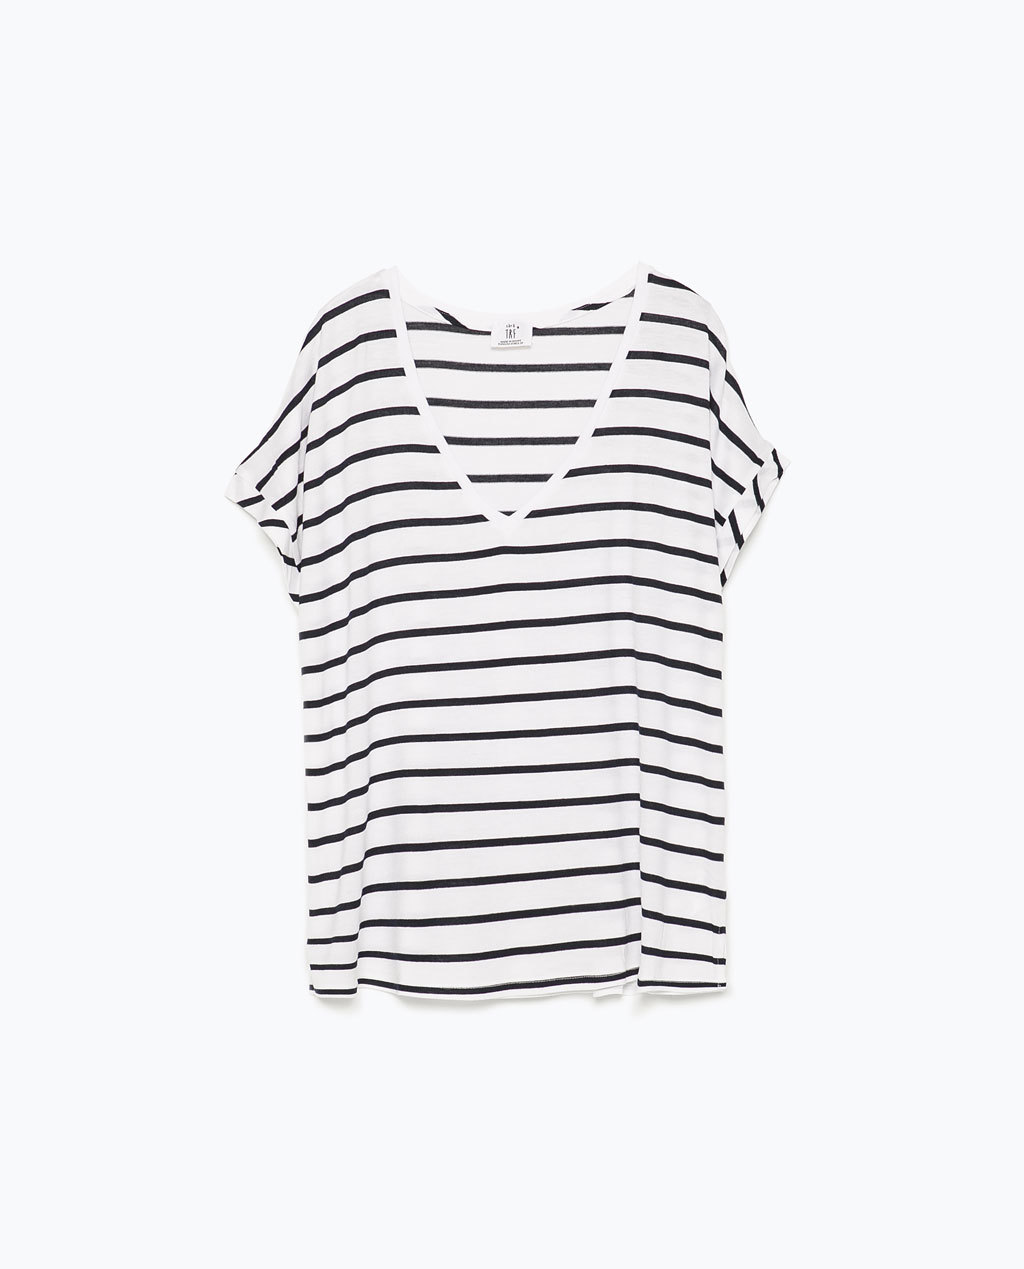 Square Cut T Shirt - pattern: horizontal stripes; style: t-shirt; secondary colour: white; predominant colour: black; occasions: casual, holiday; length: standard; fit: loose; sleeve length: short sleeve; sleeve style: standard; neckline: low square neck; pattern type: fabric; texture group: jersey - stretchy/drapey; season: s/s 2015; wardrobe: basic